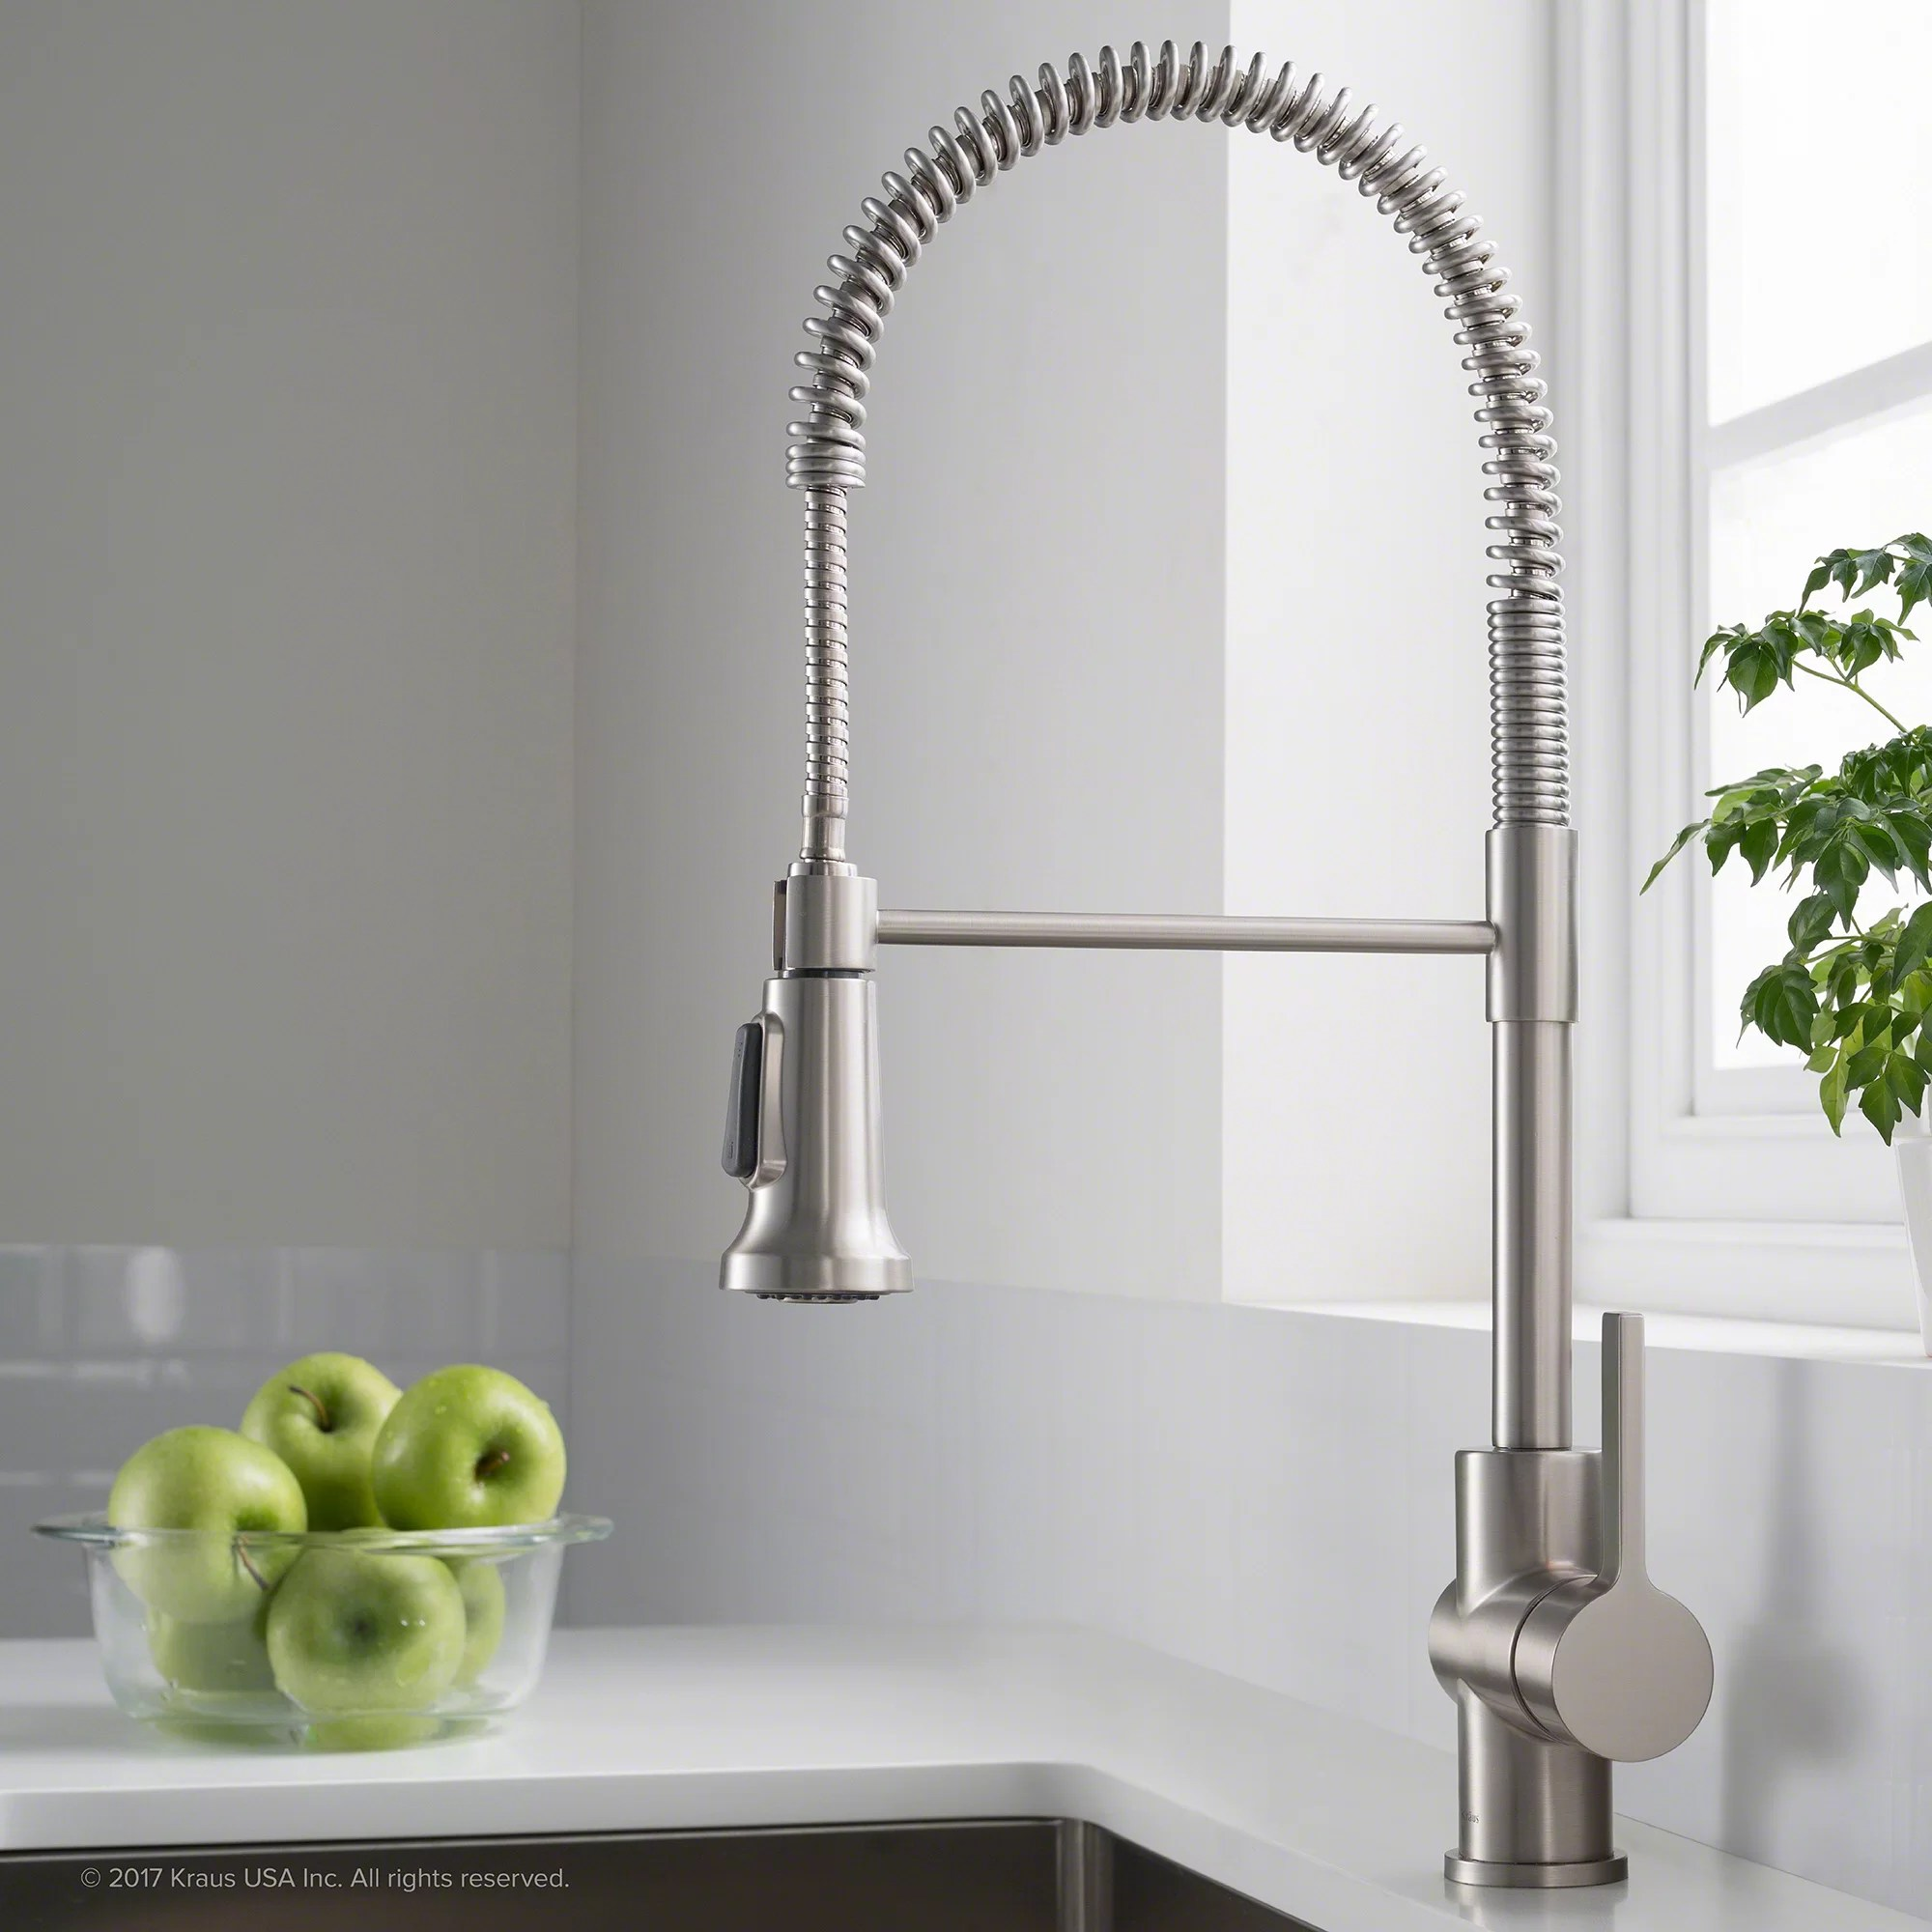 professional kitchen faucet unclog drain kraus britt commercial pull down single handle with kpf 1690sfs dual function